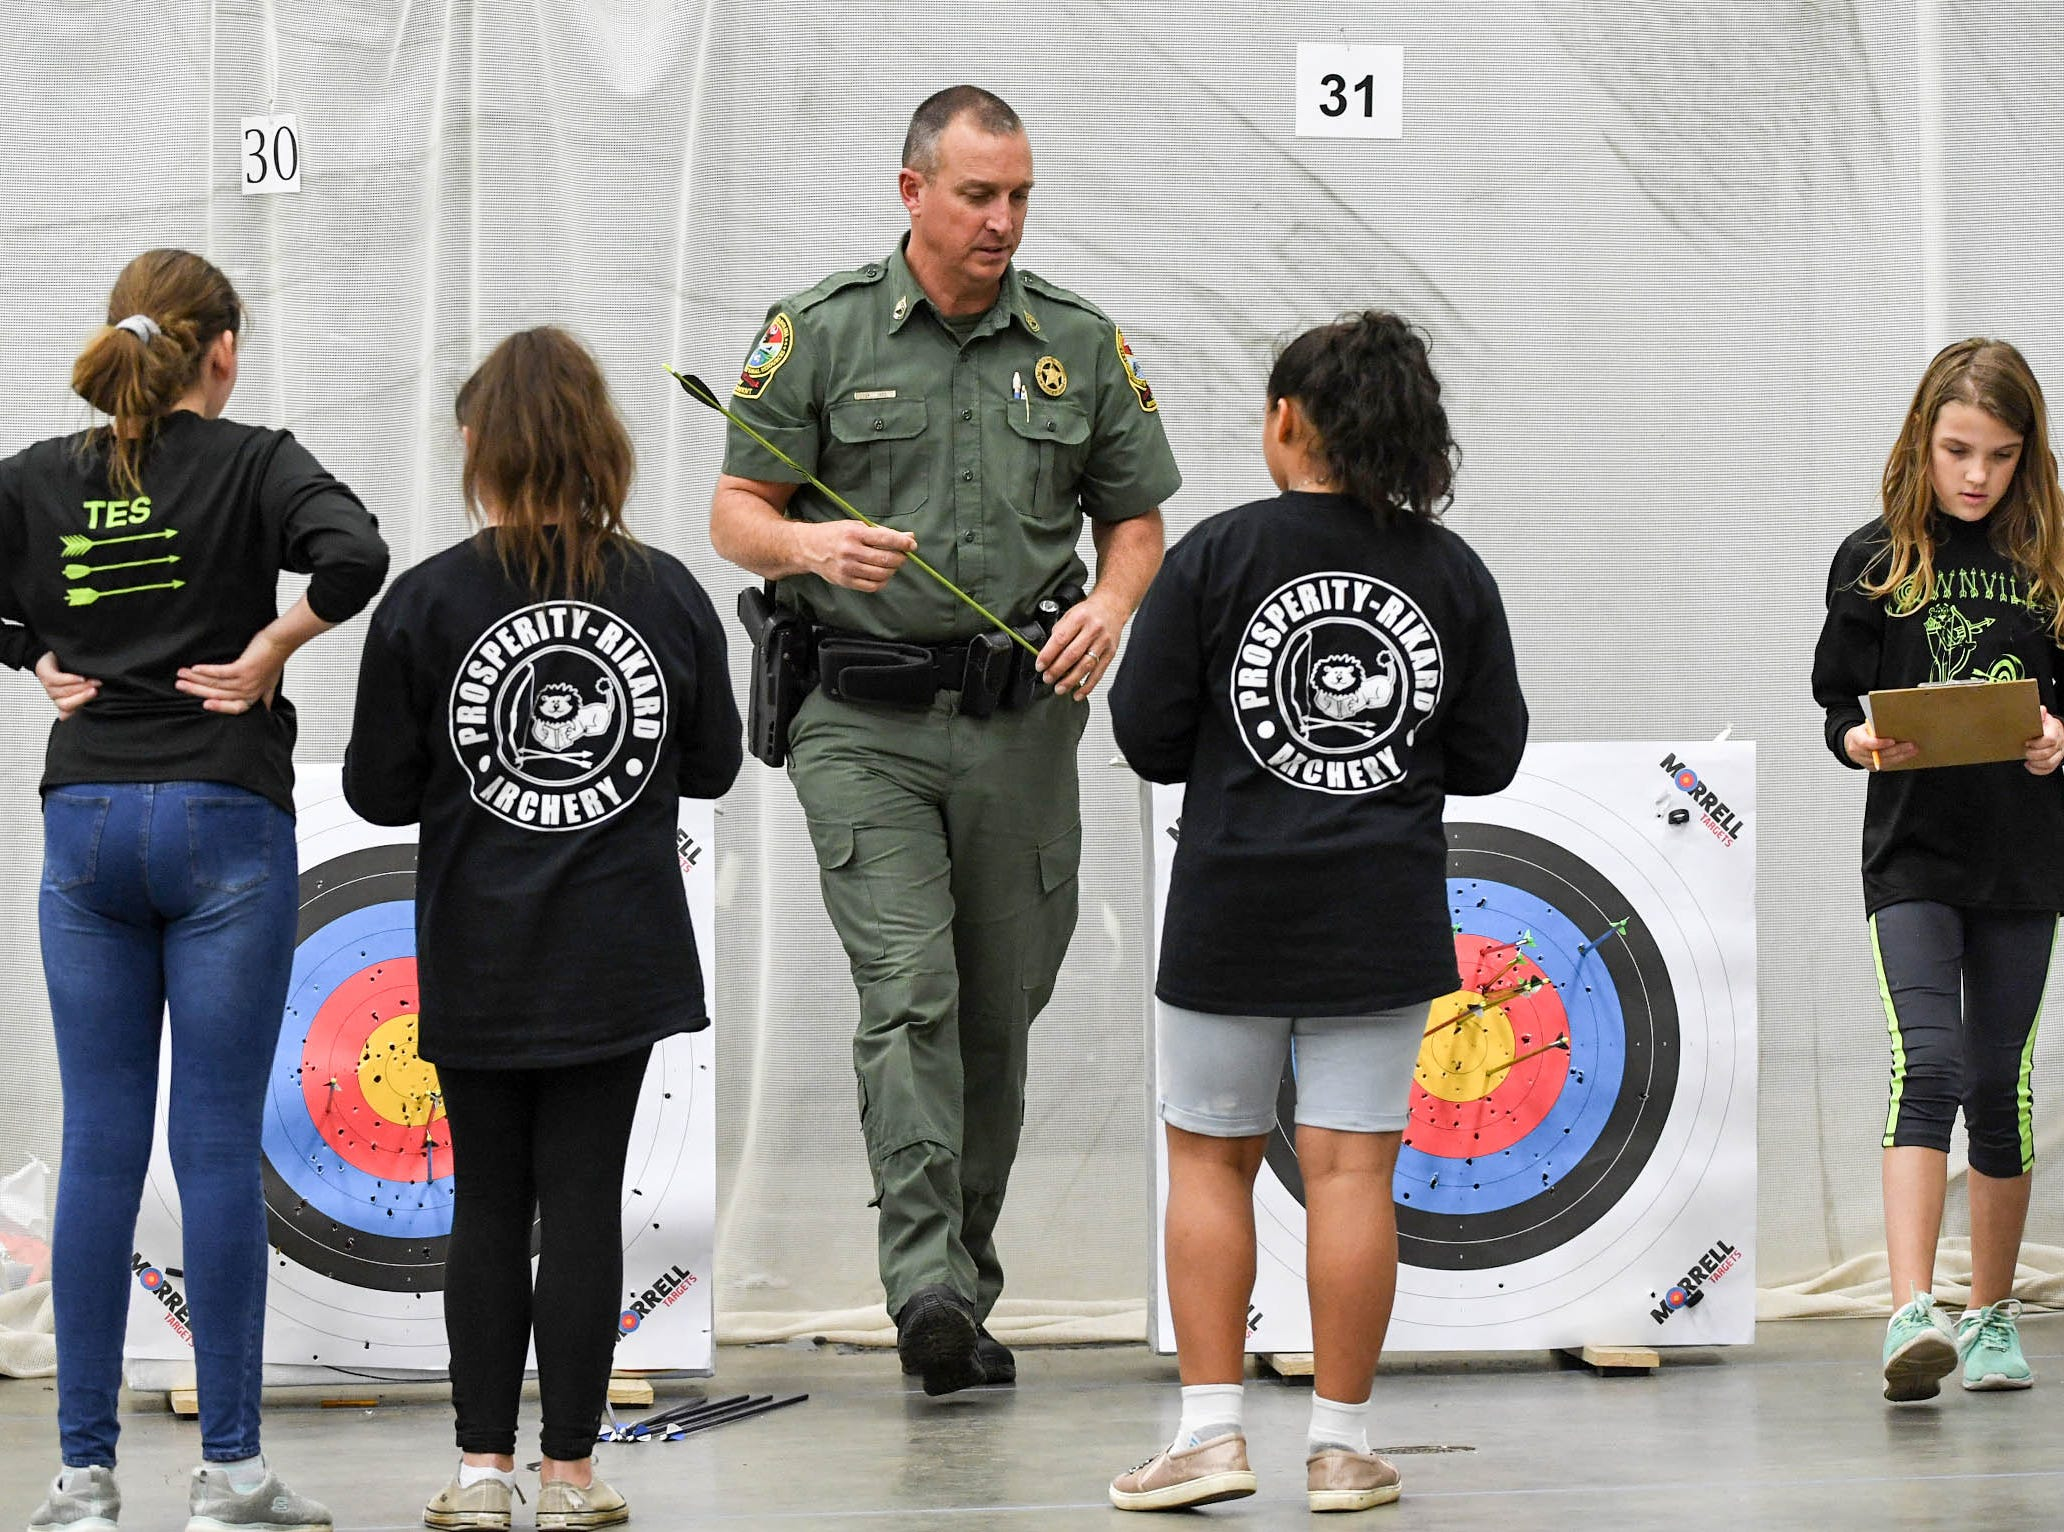 Sfc. Ken Cope, left, helps teach students during the South Carolina Department of Natural Resources regional National Archery in the Schools Program (NASP) regional competition at the Anderson Civic Center Wednesday.